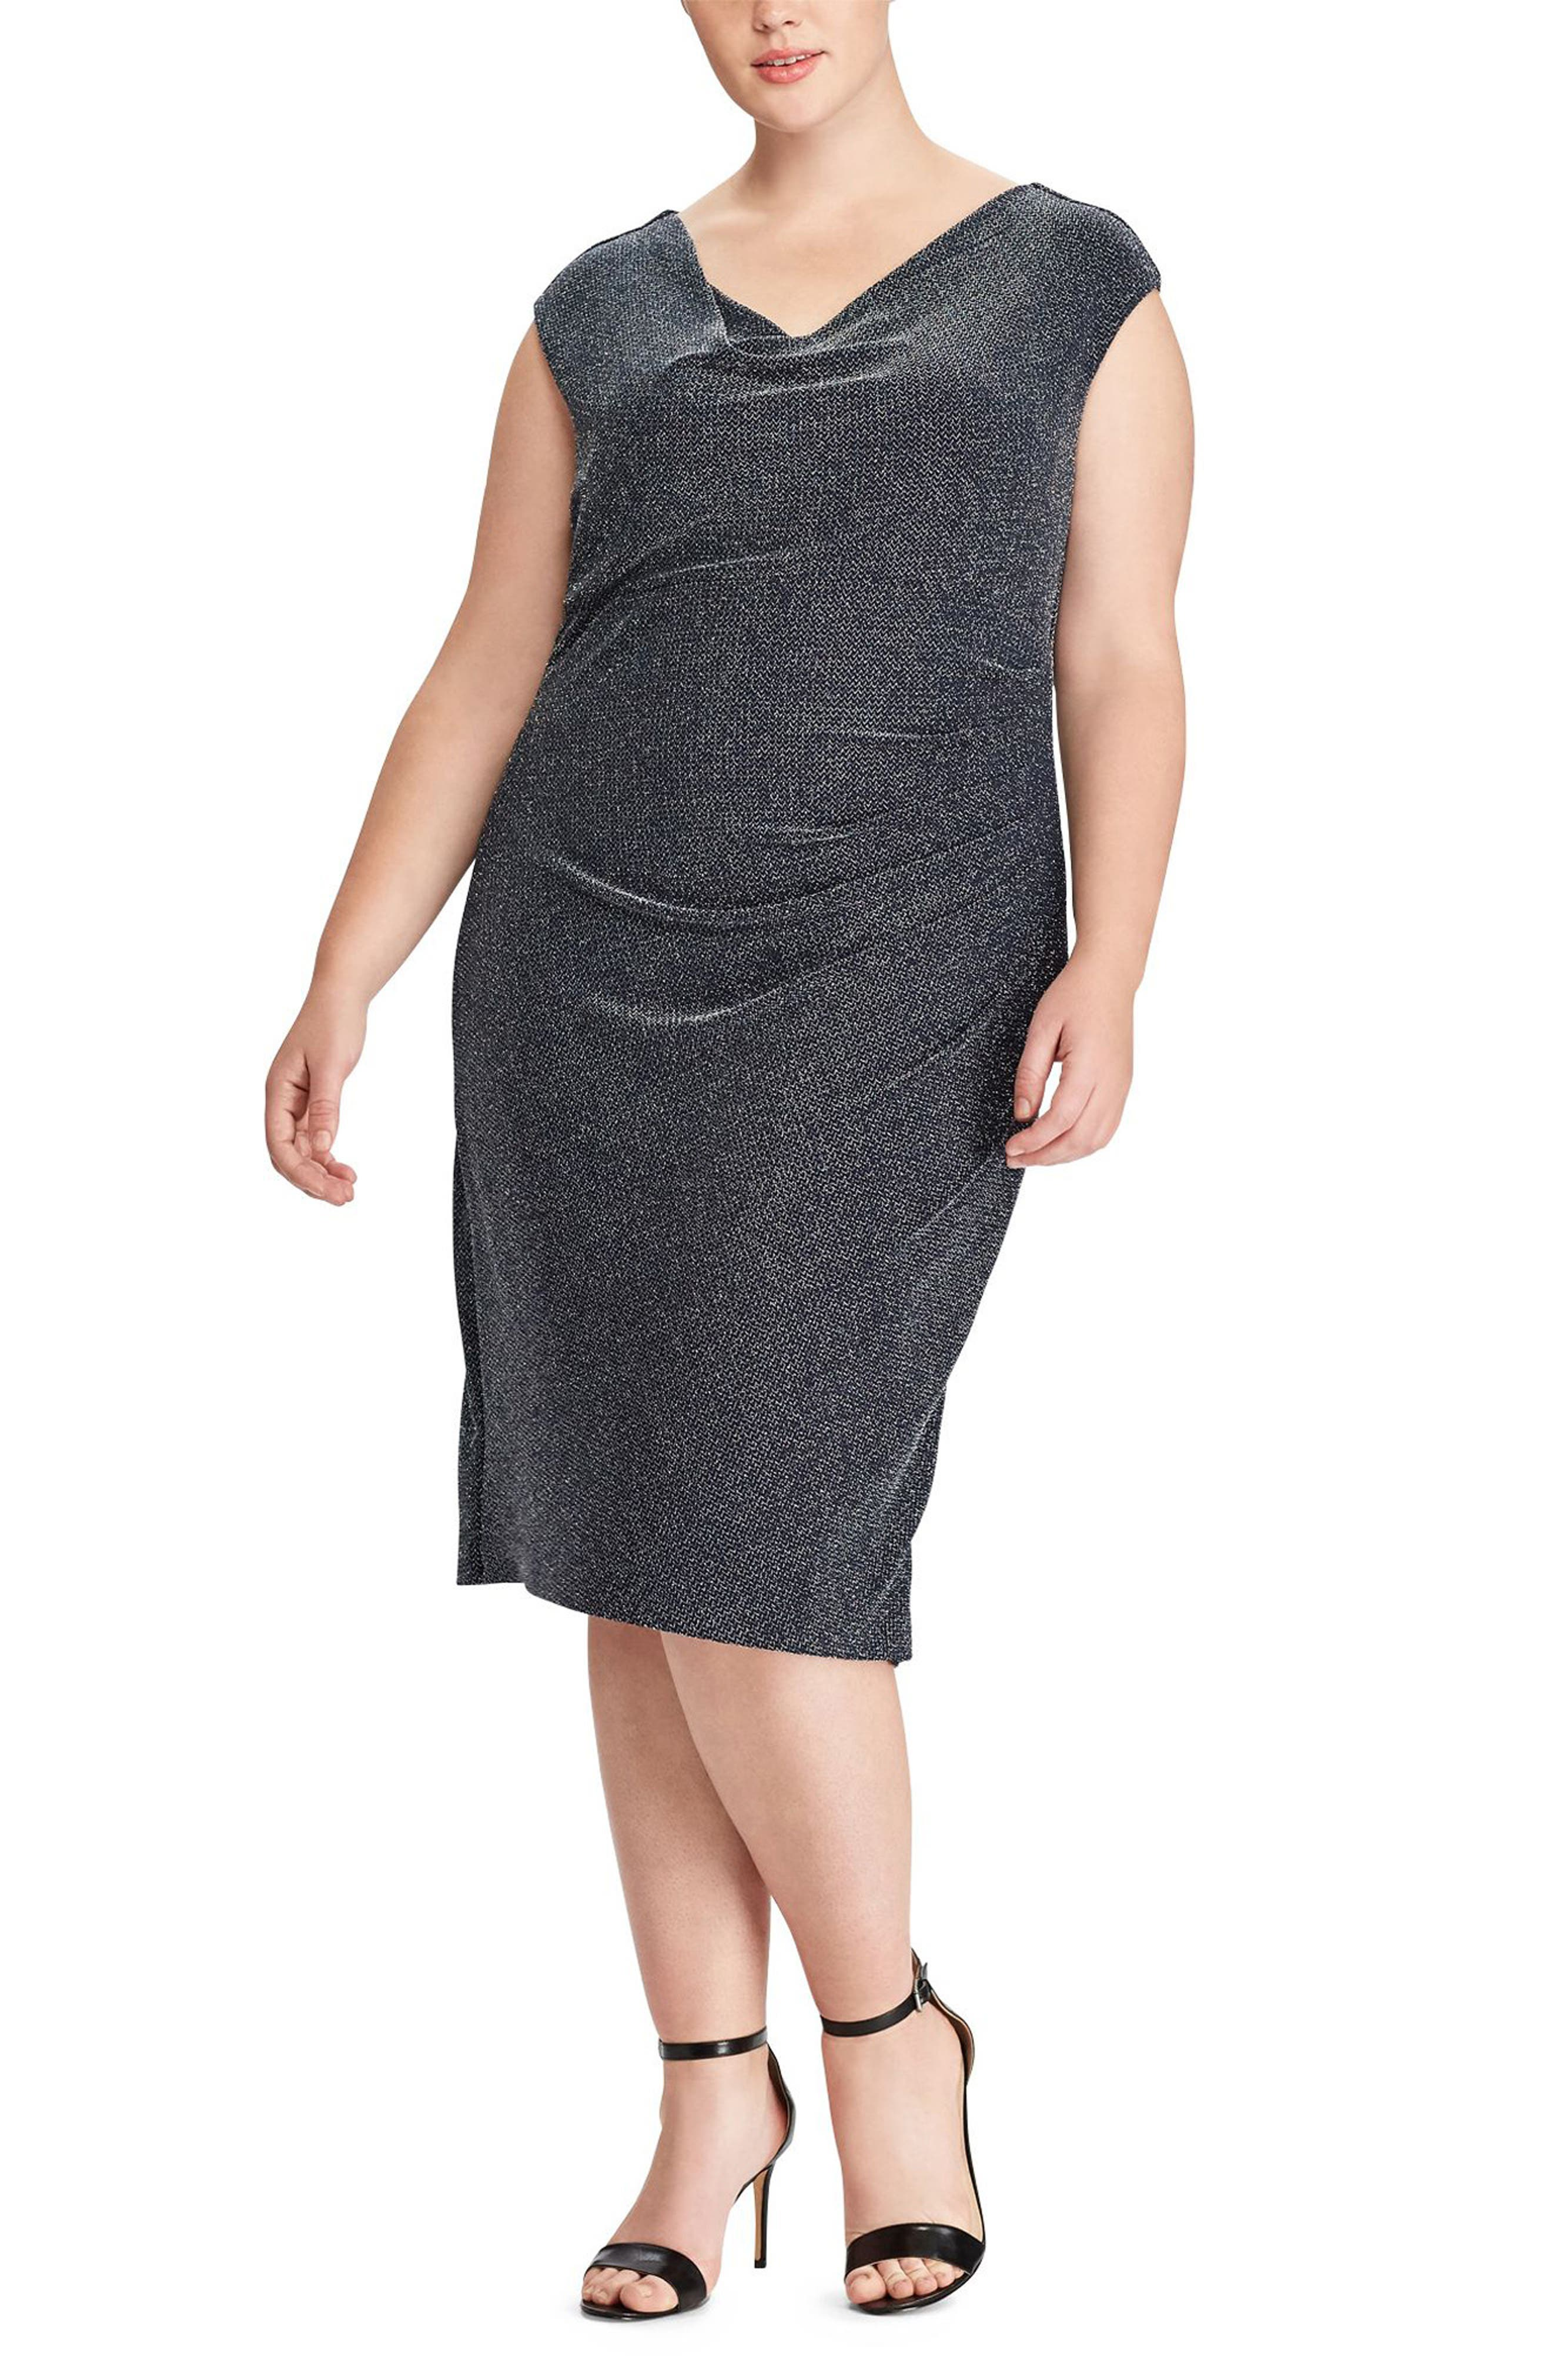 Main Image - Lauren Ralph Lauren Valli Metallic Knit Dress (Plus Size)